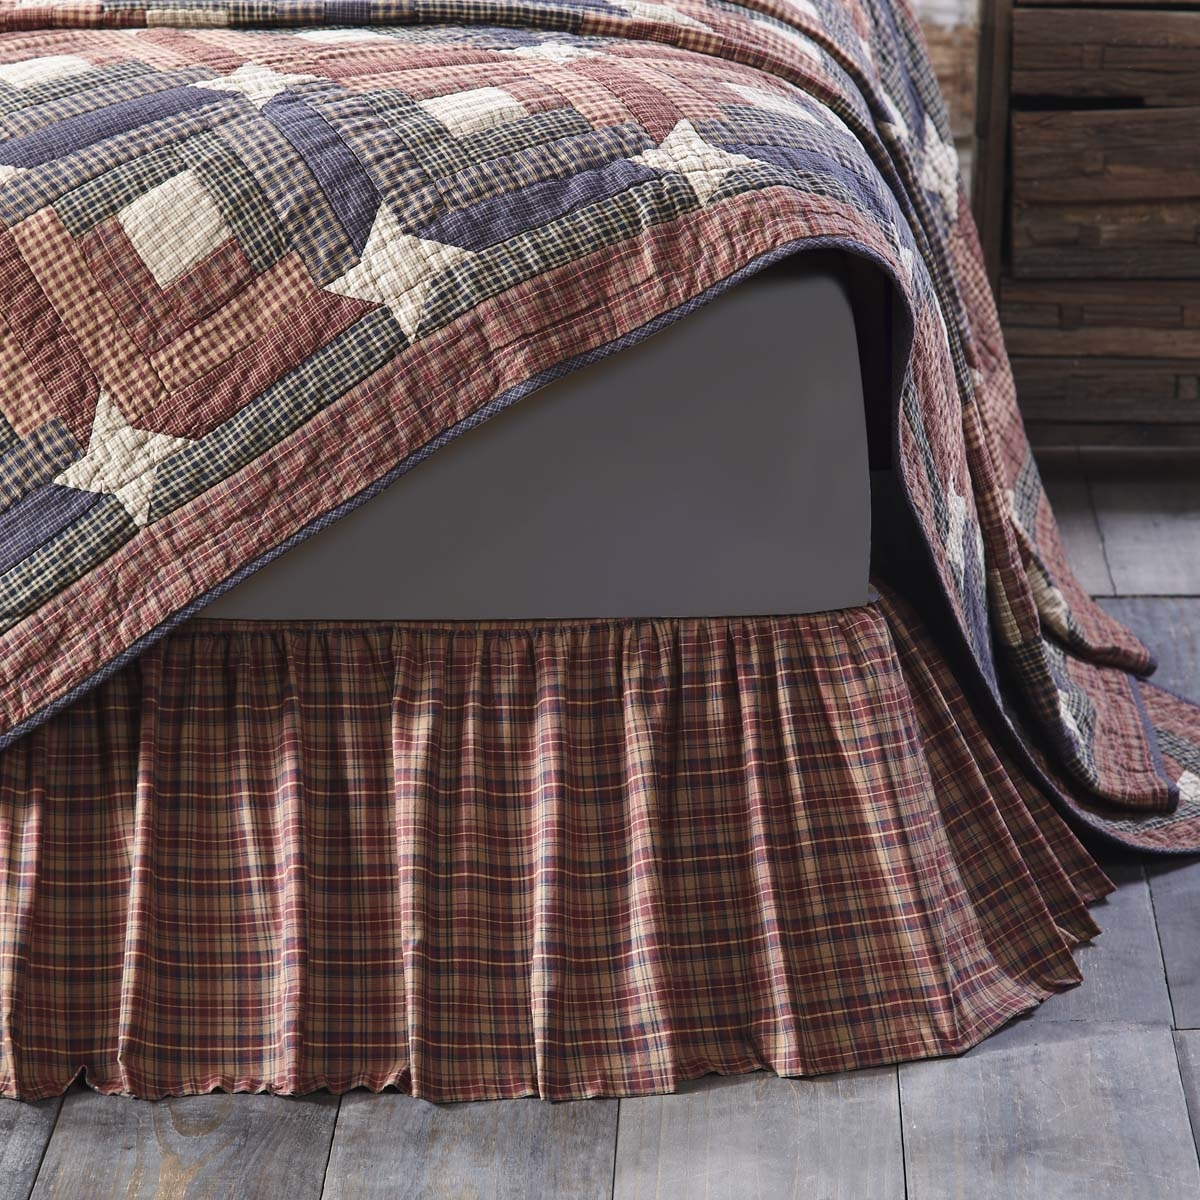 Rustic & Lodge Bedding Parker Red Bed Skirt 5b17f2b82a00e4204a3d27fe